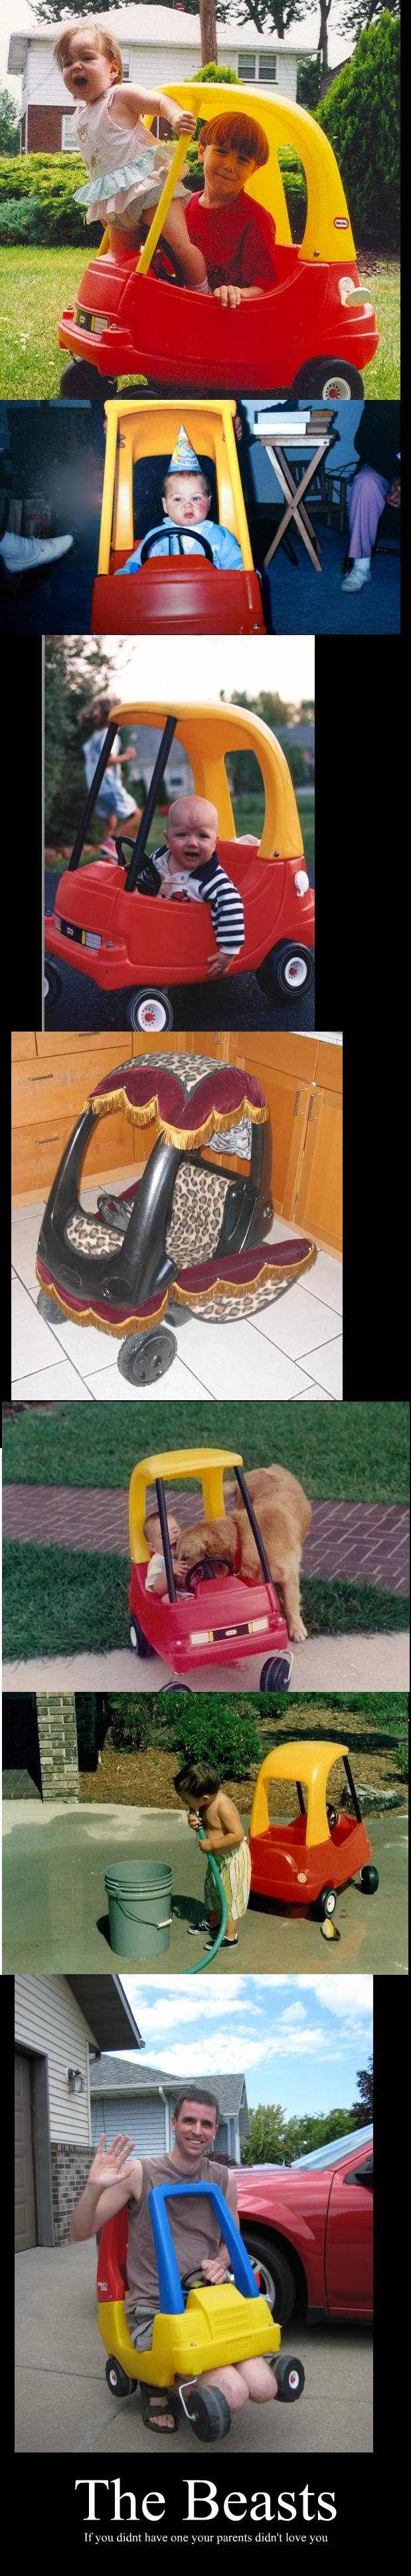 The Beasts. Thumbs up if your parents loved you. The Beasts your mm kart, W. i had a go-kart